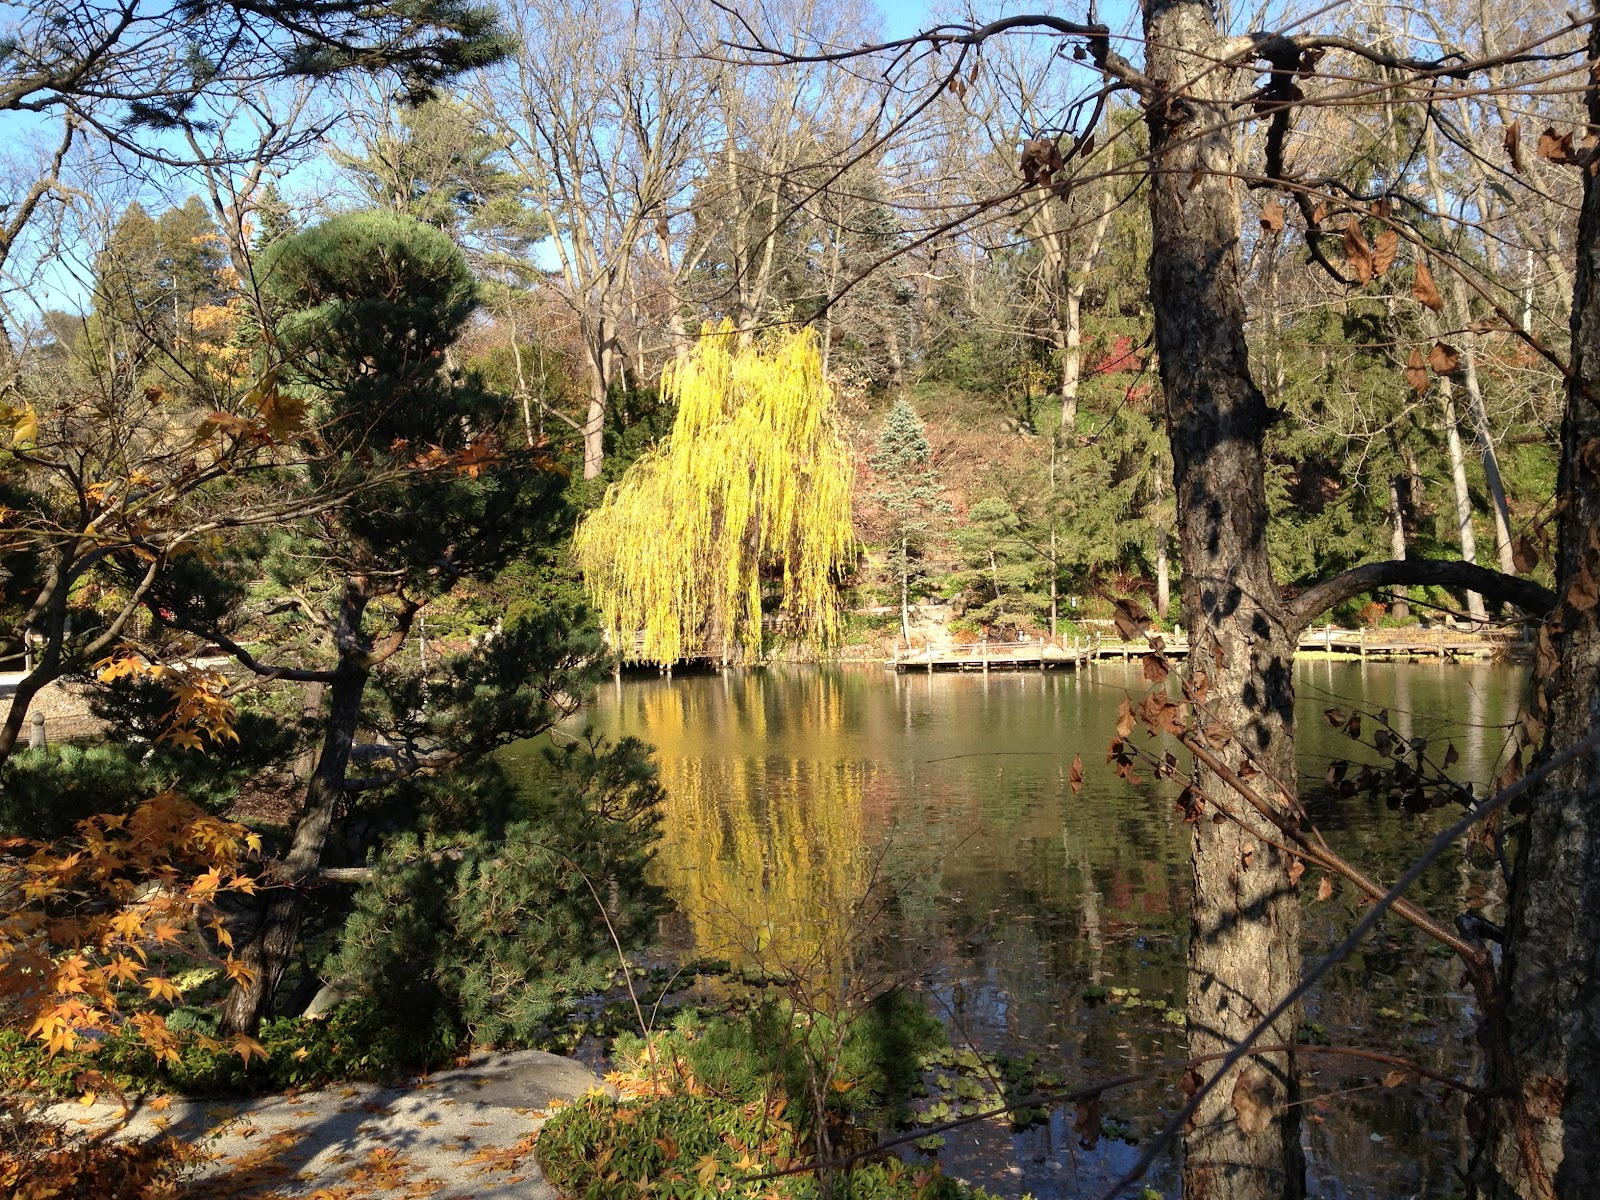 Garden of Reflection: Water, Ponds and Koi